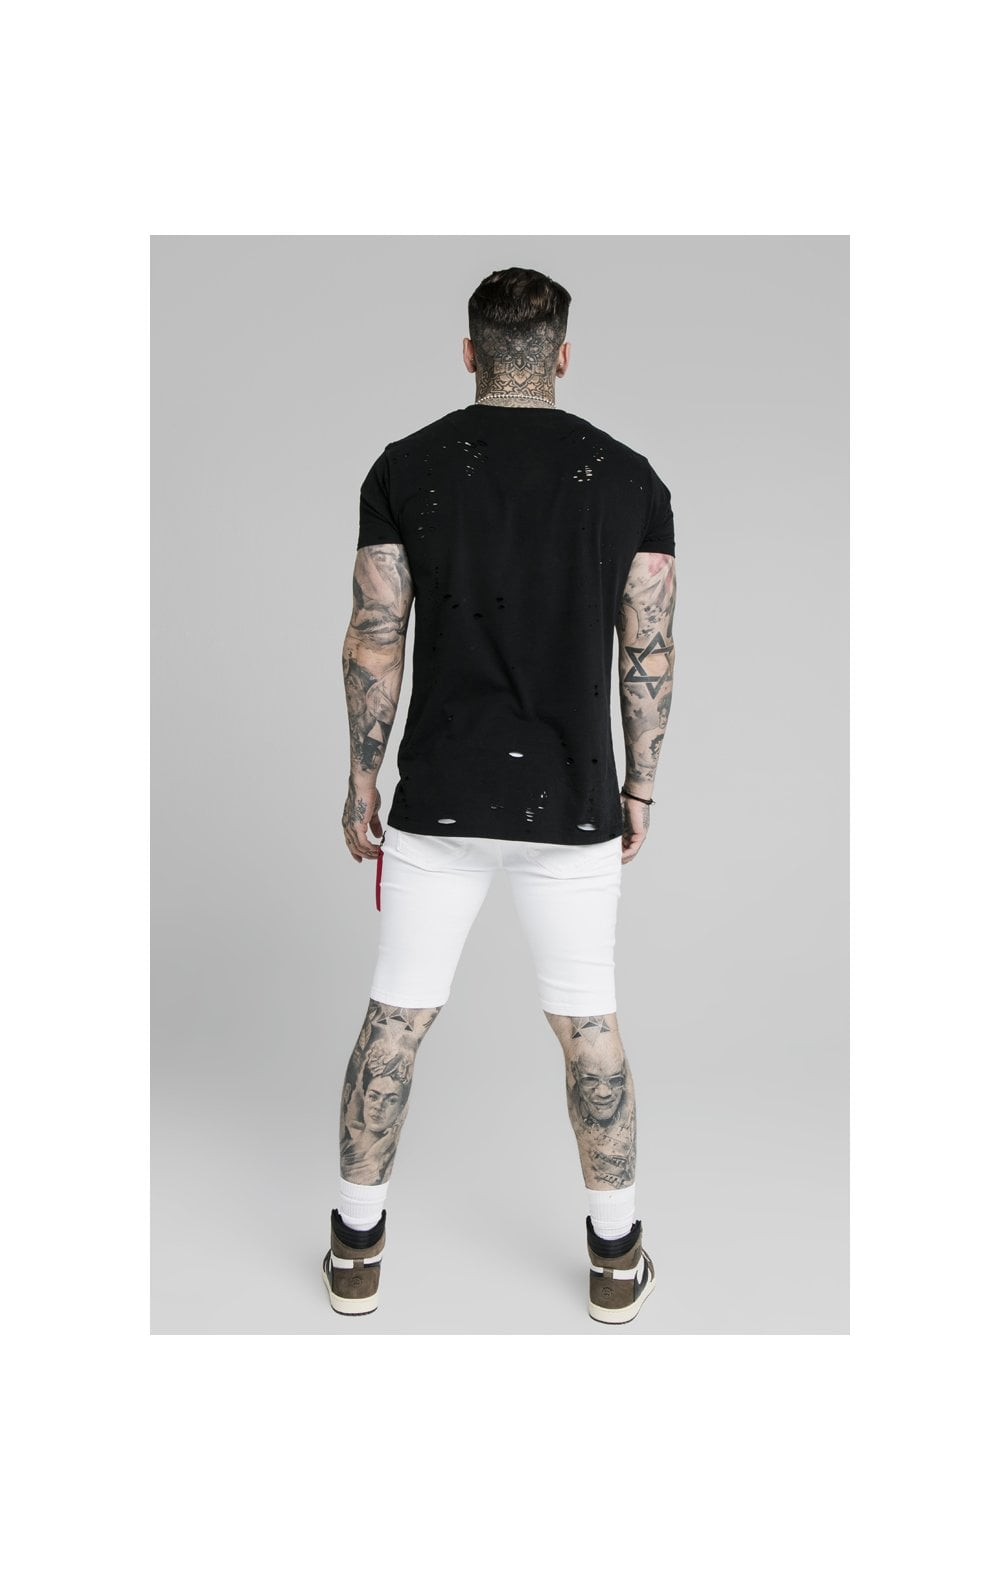 SikSilk Distressed Denim Flight Shorts - White (6)